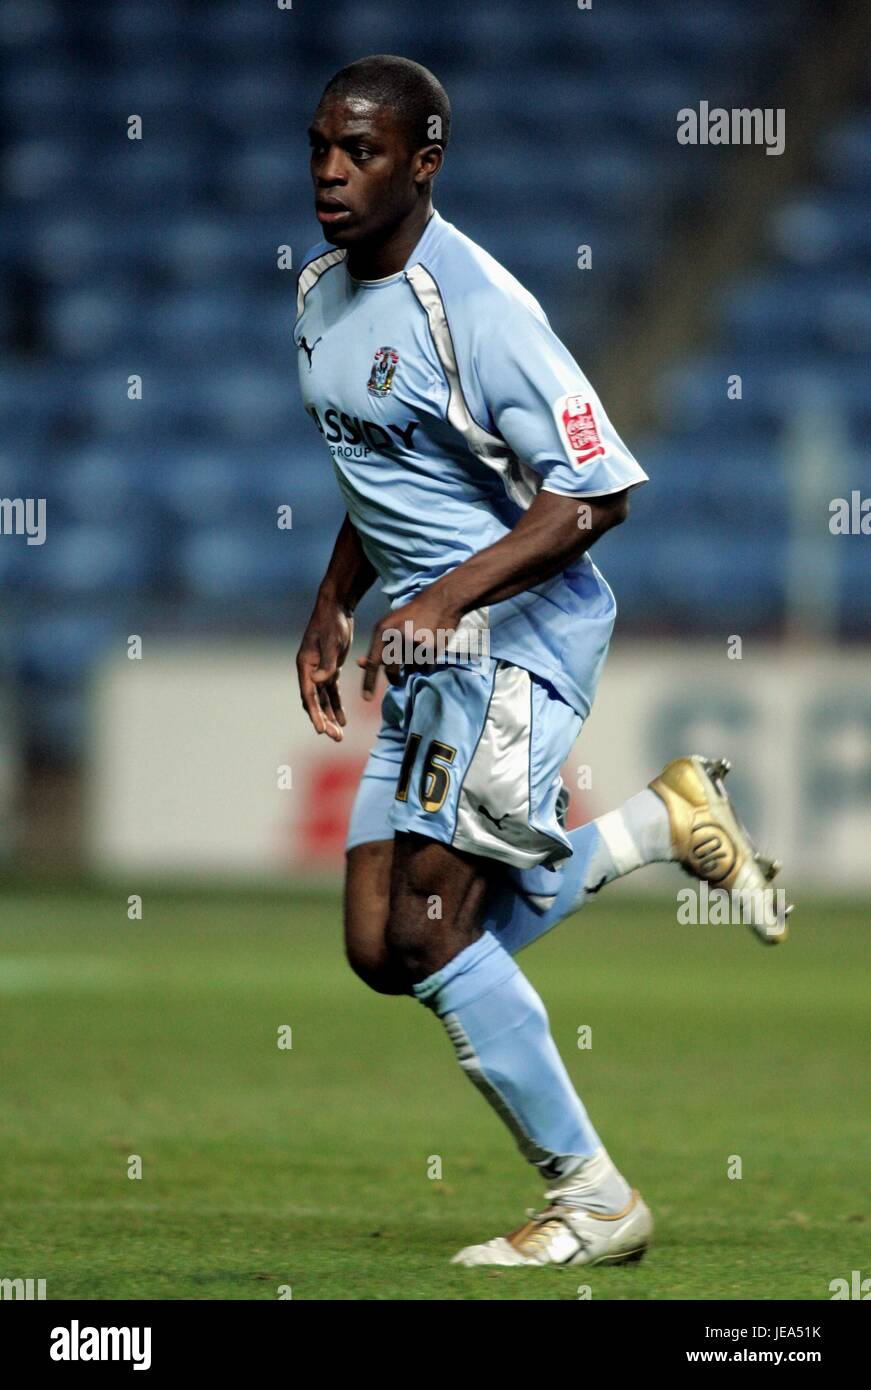 ISAAC OSBOURNE COVENTRY CITY FC RICOH STADIUM COVENTRY ENGLAND 12 November 2007 - Stock Image